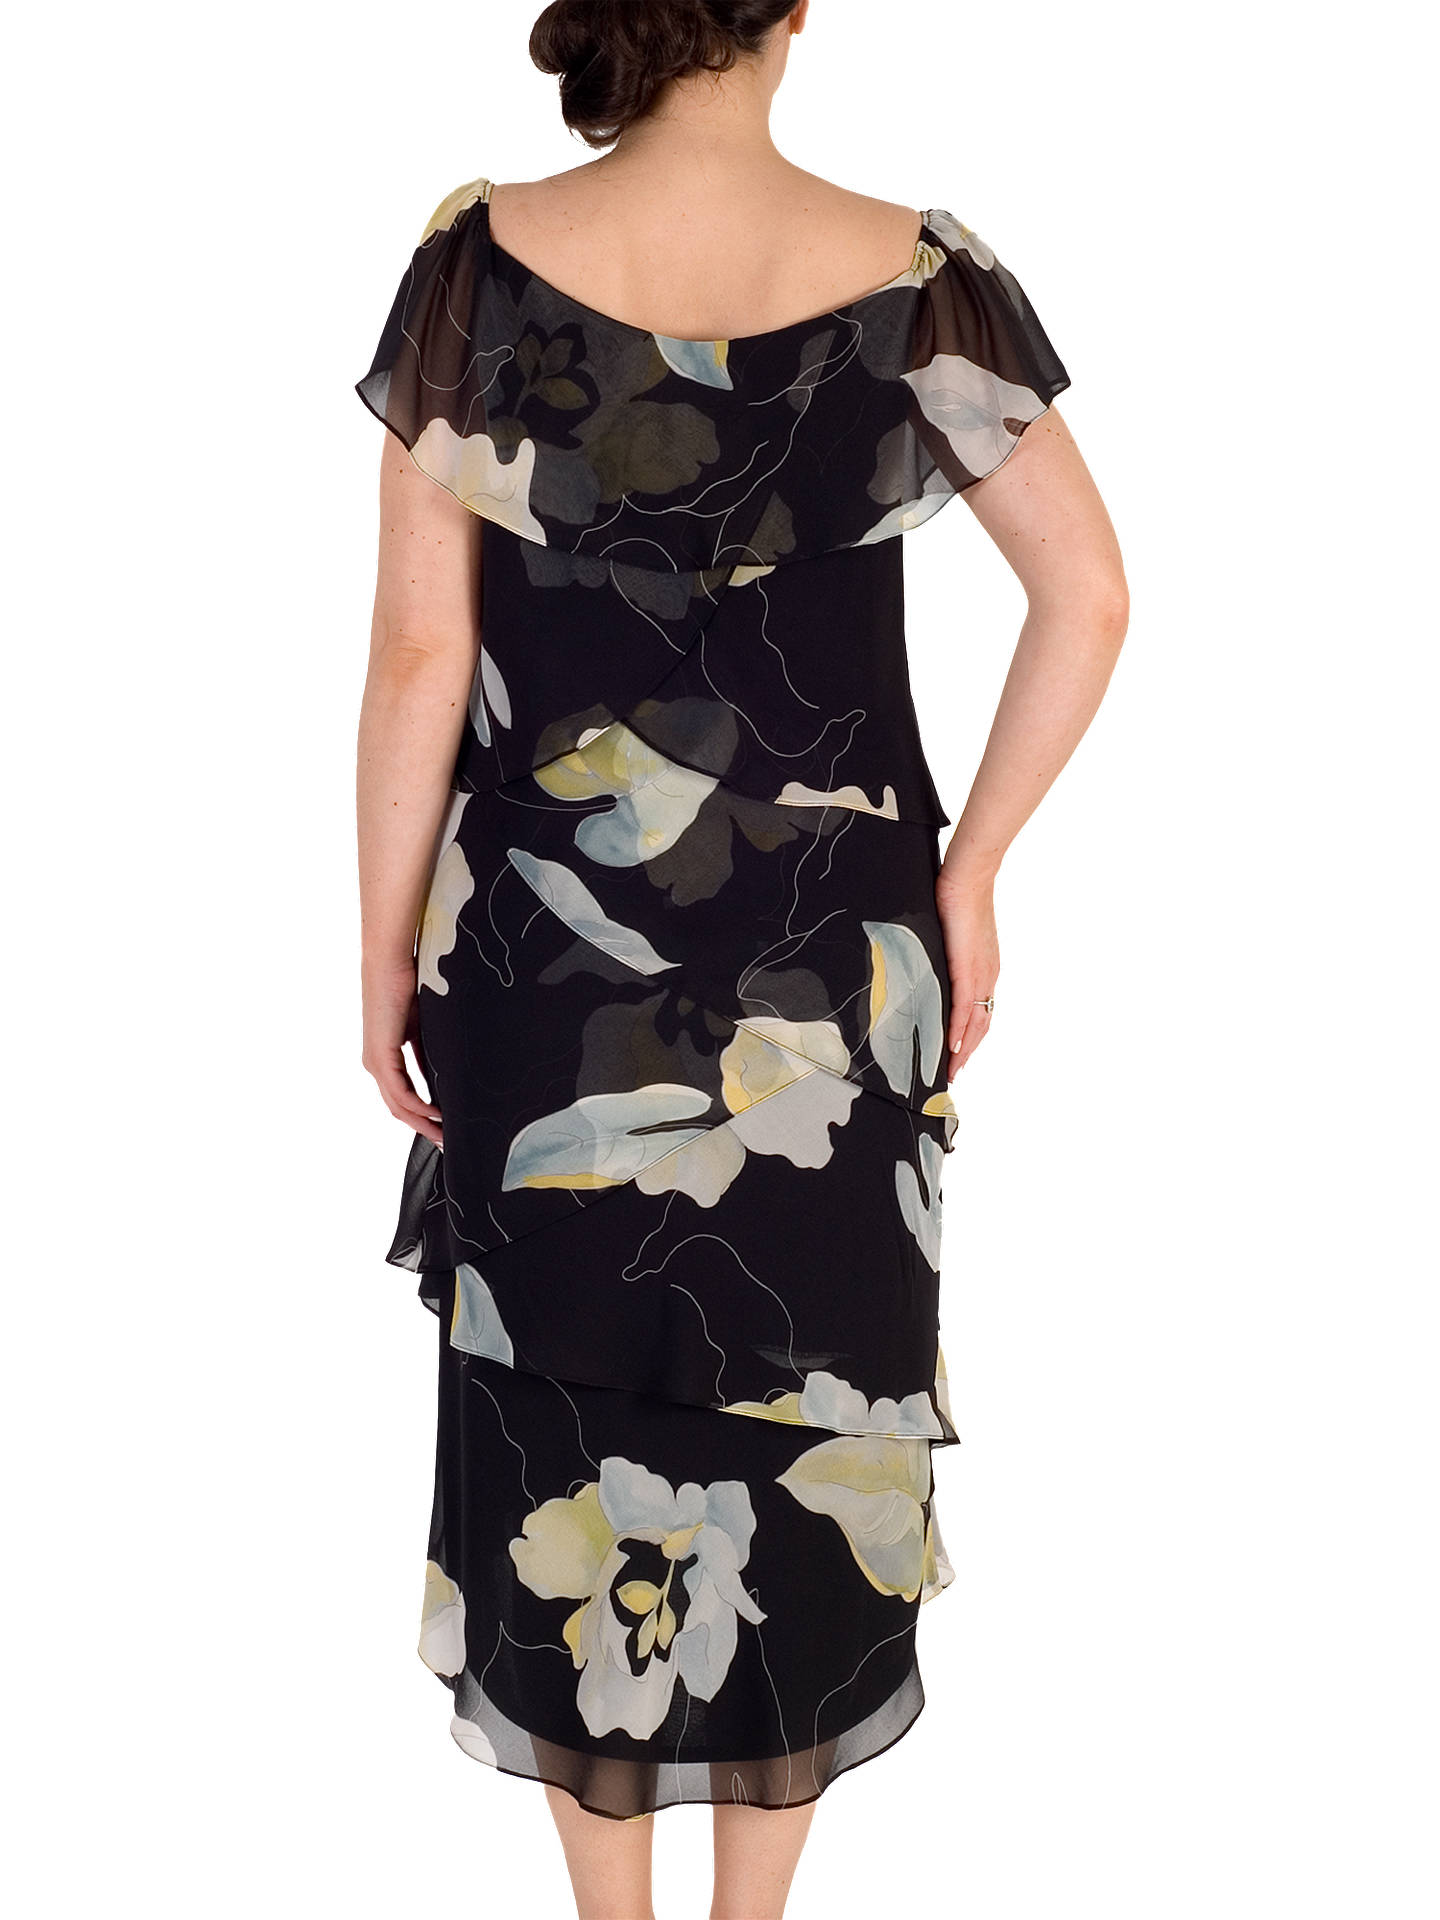 BuyChesca Floral Layered Dress, Black/Multi, 12 Online at johnlewis.com